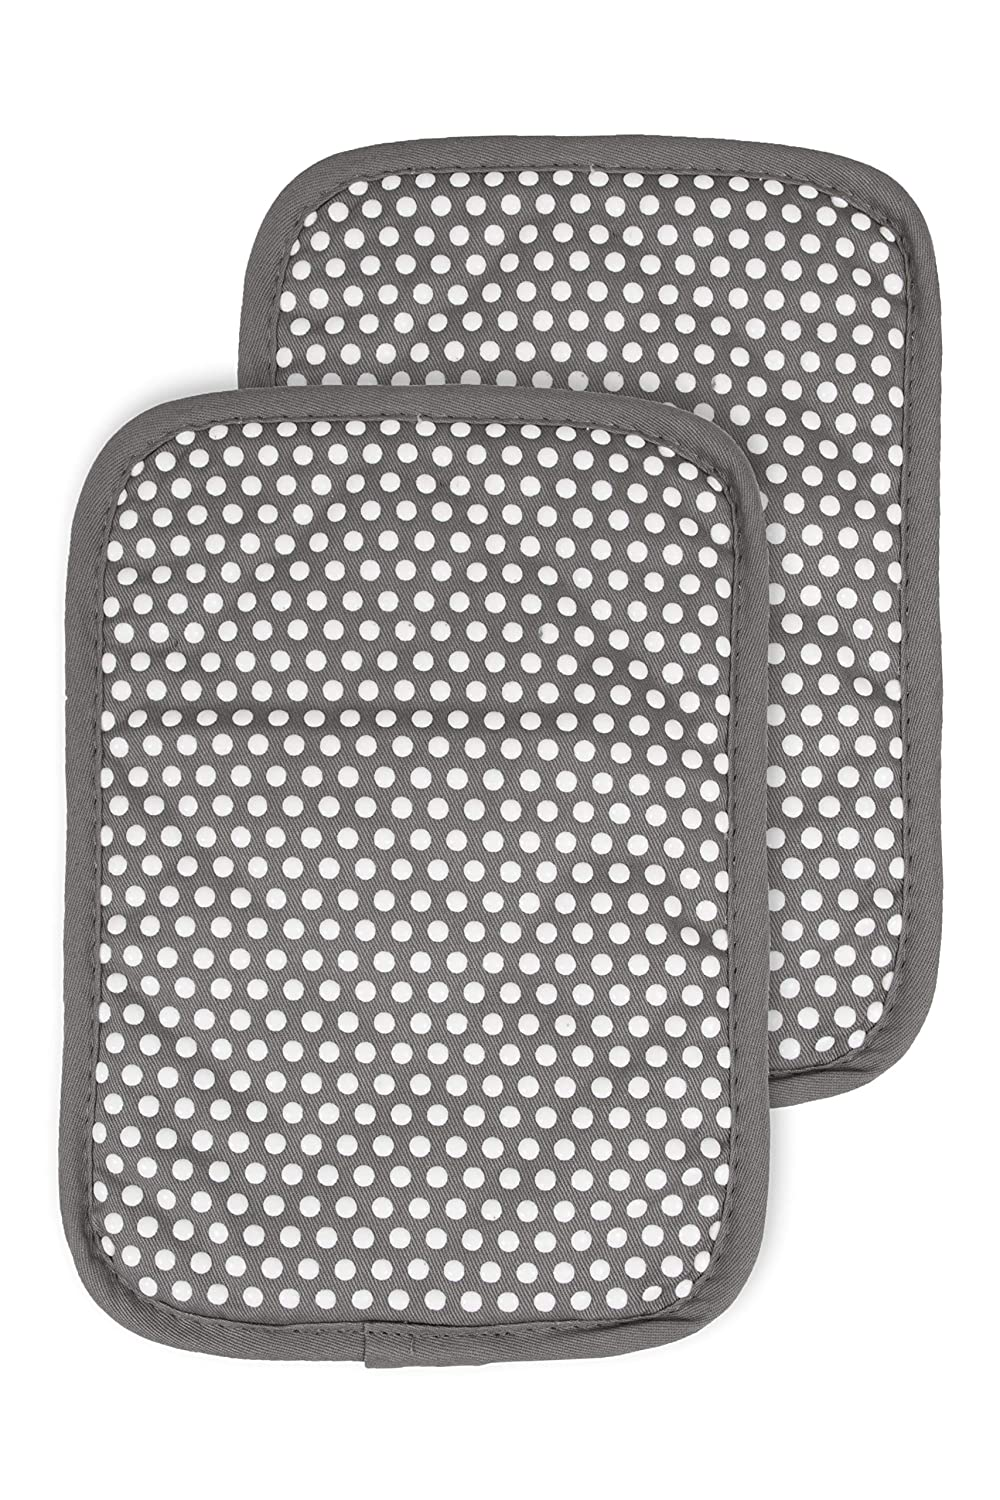 RITZ Royale 031211 Silicone Pot Holder, 2-Pack, Graphite